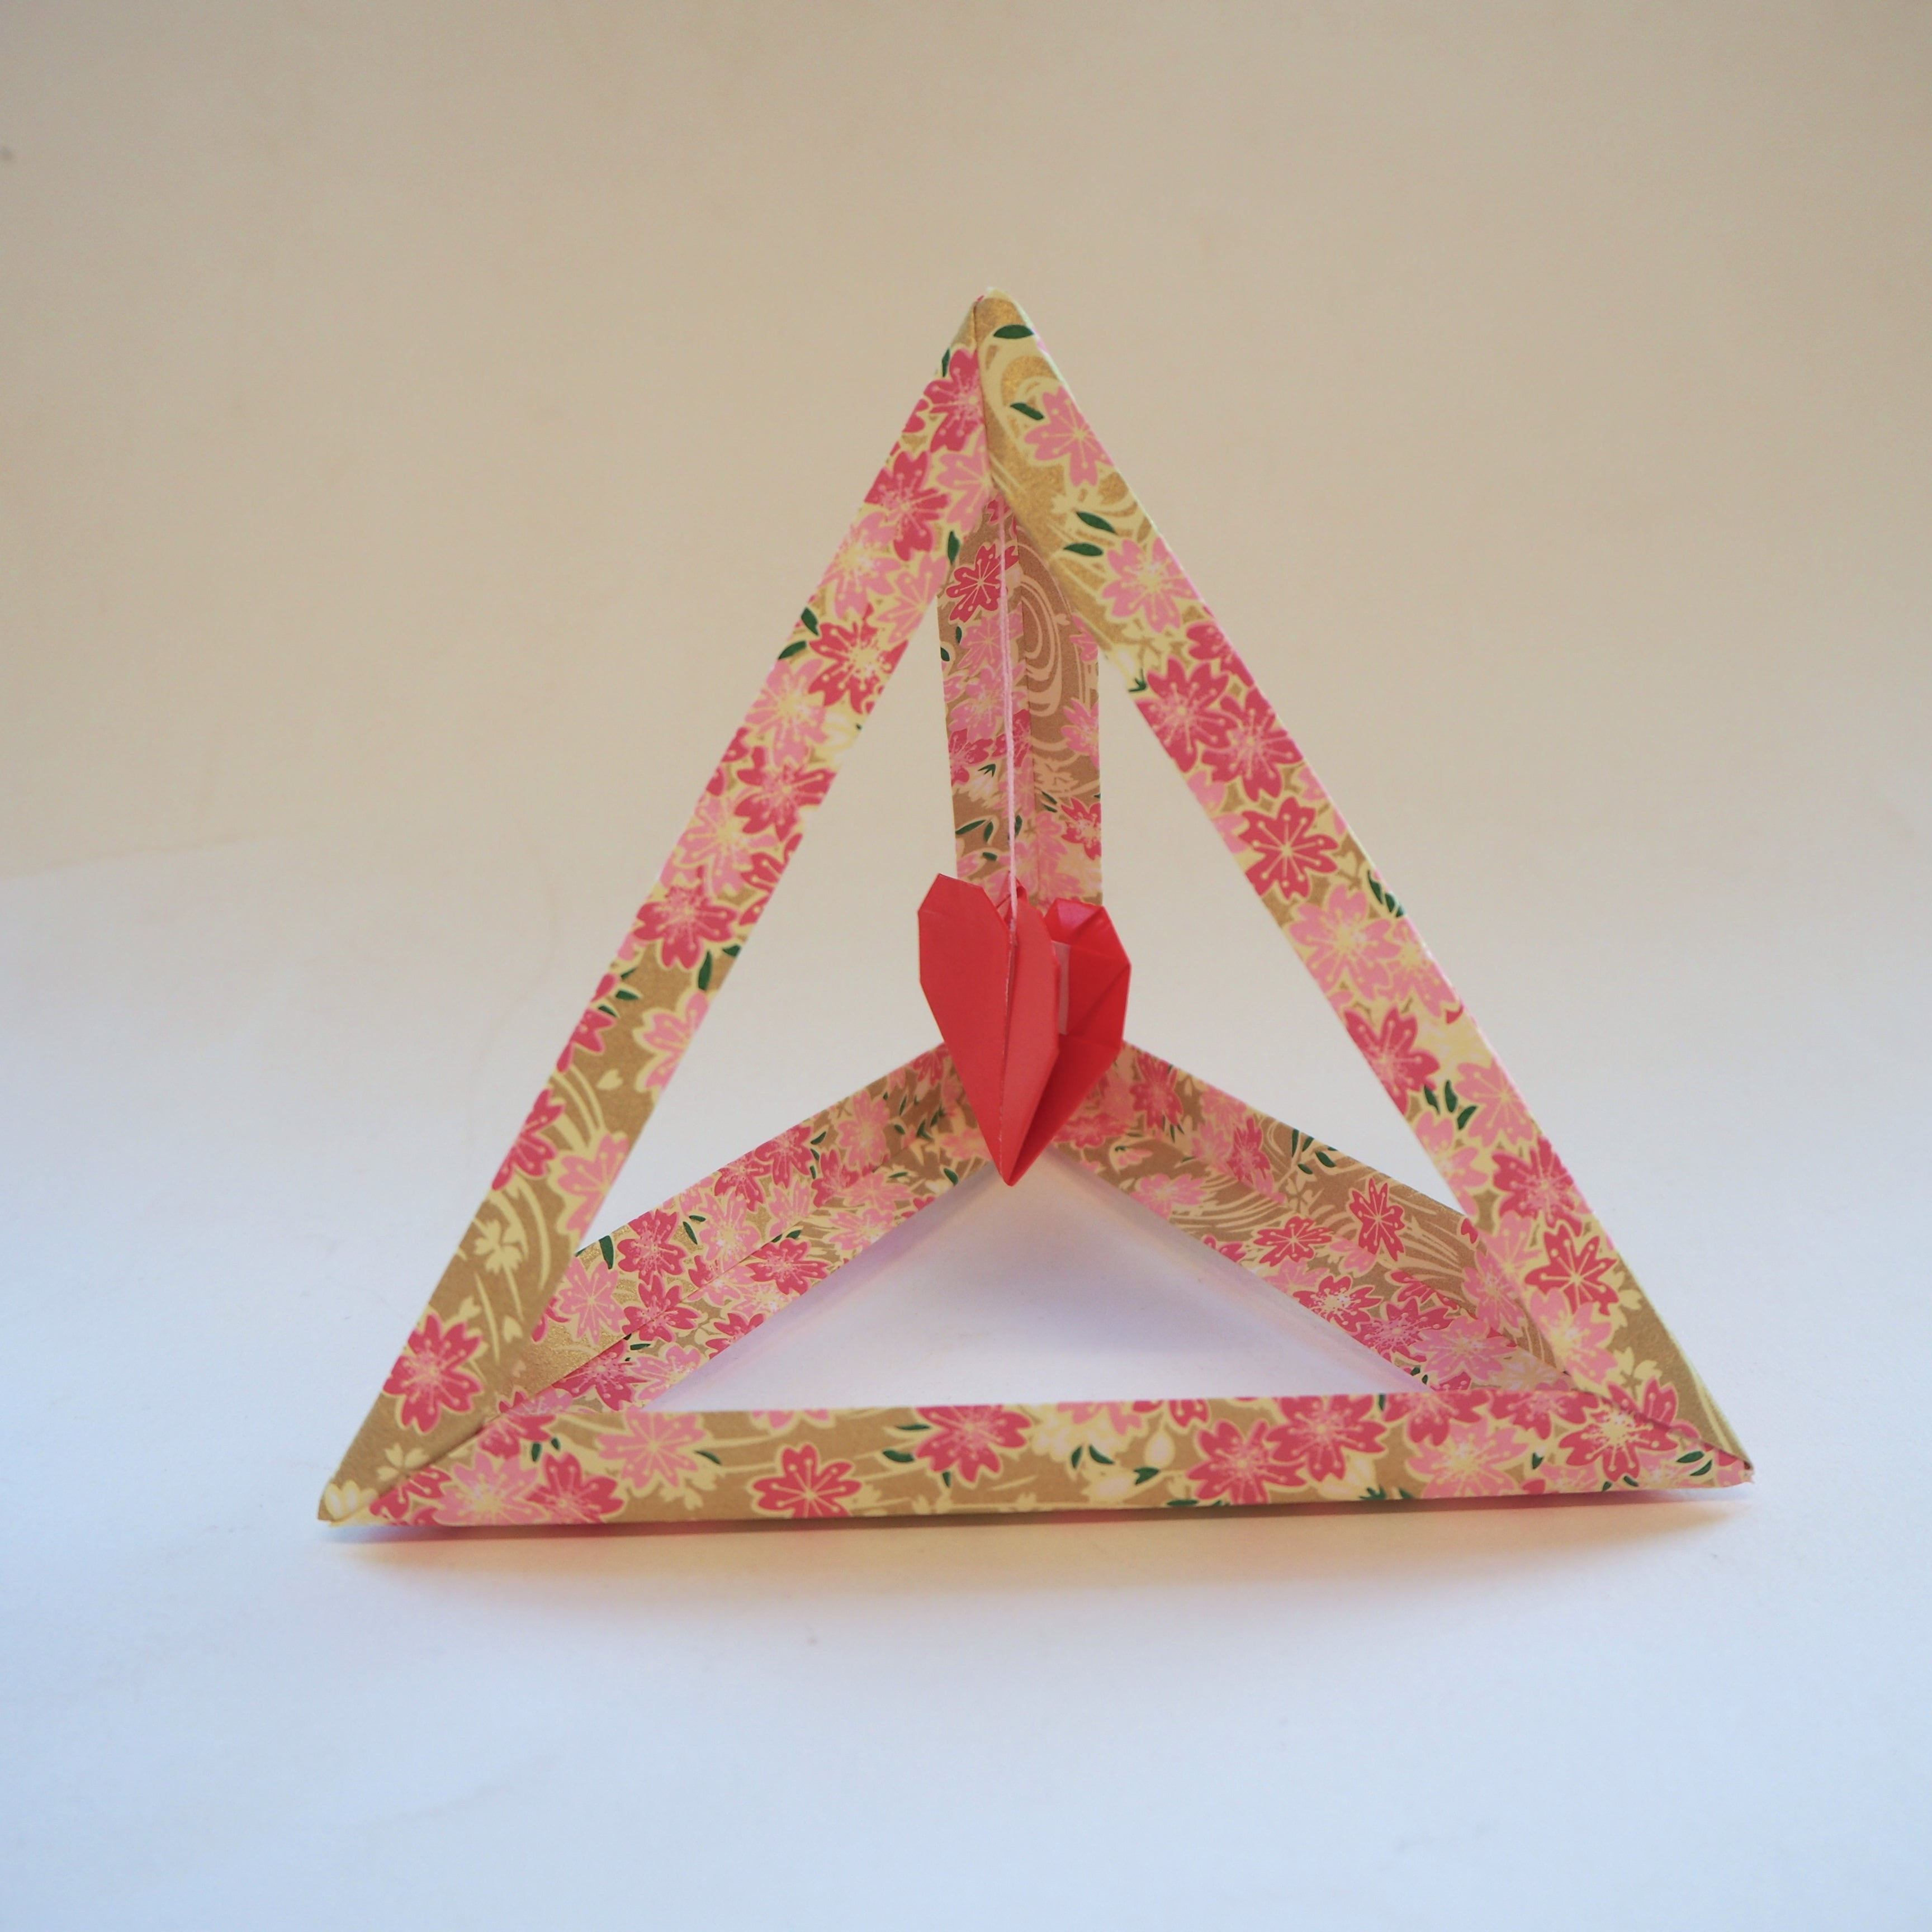 origami tetrahedron heart, valentines day gift, decoration